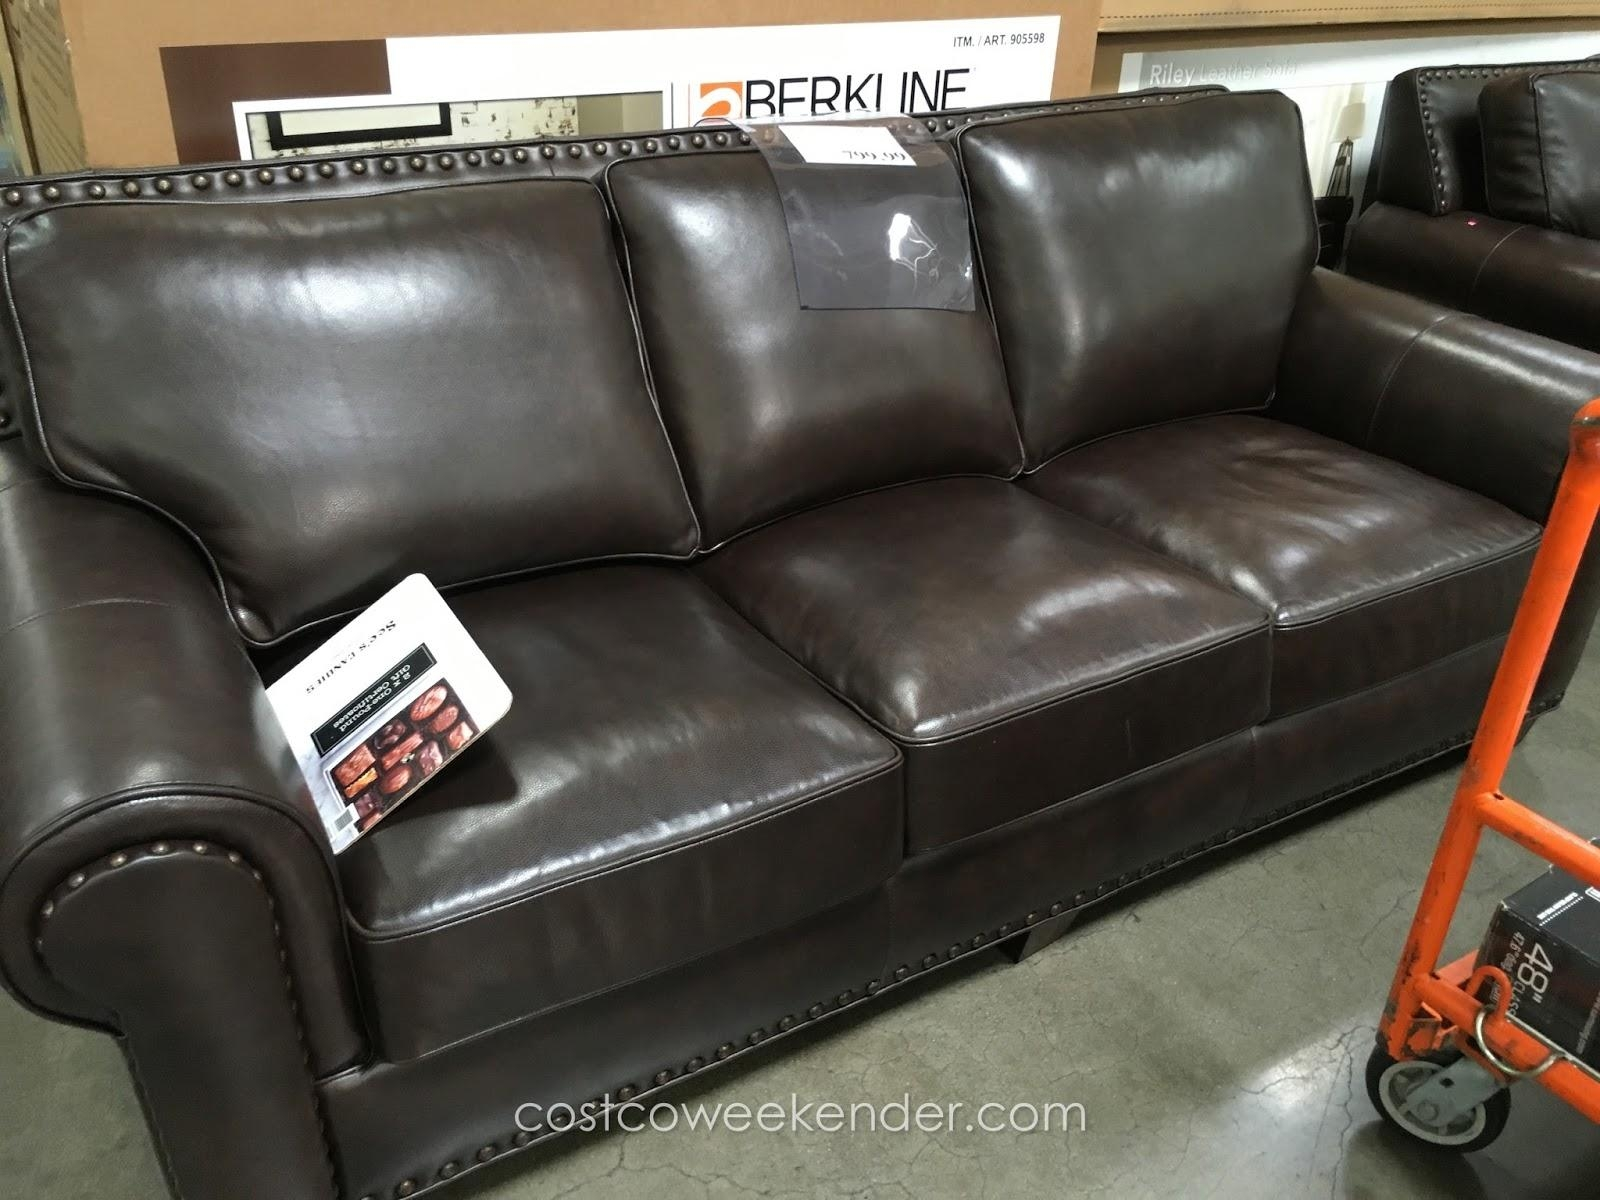 Furniture & Sofa: Enjoy Your Holiday With Costco Home Theater With Regard To Berkline Leather Sofas (Image 10 of 20)